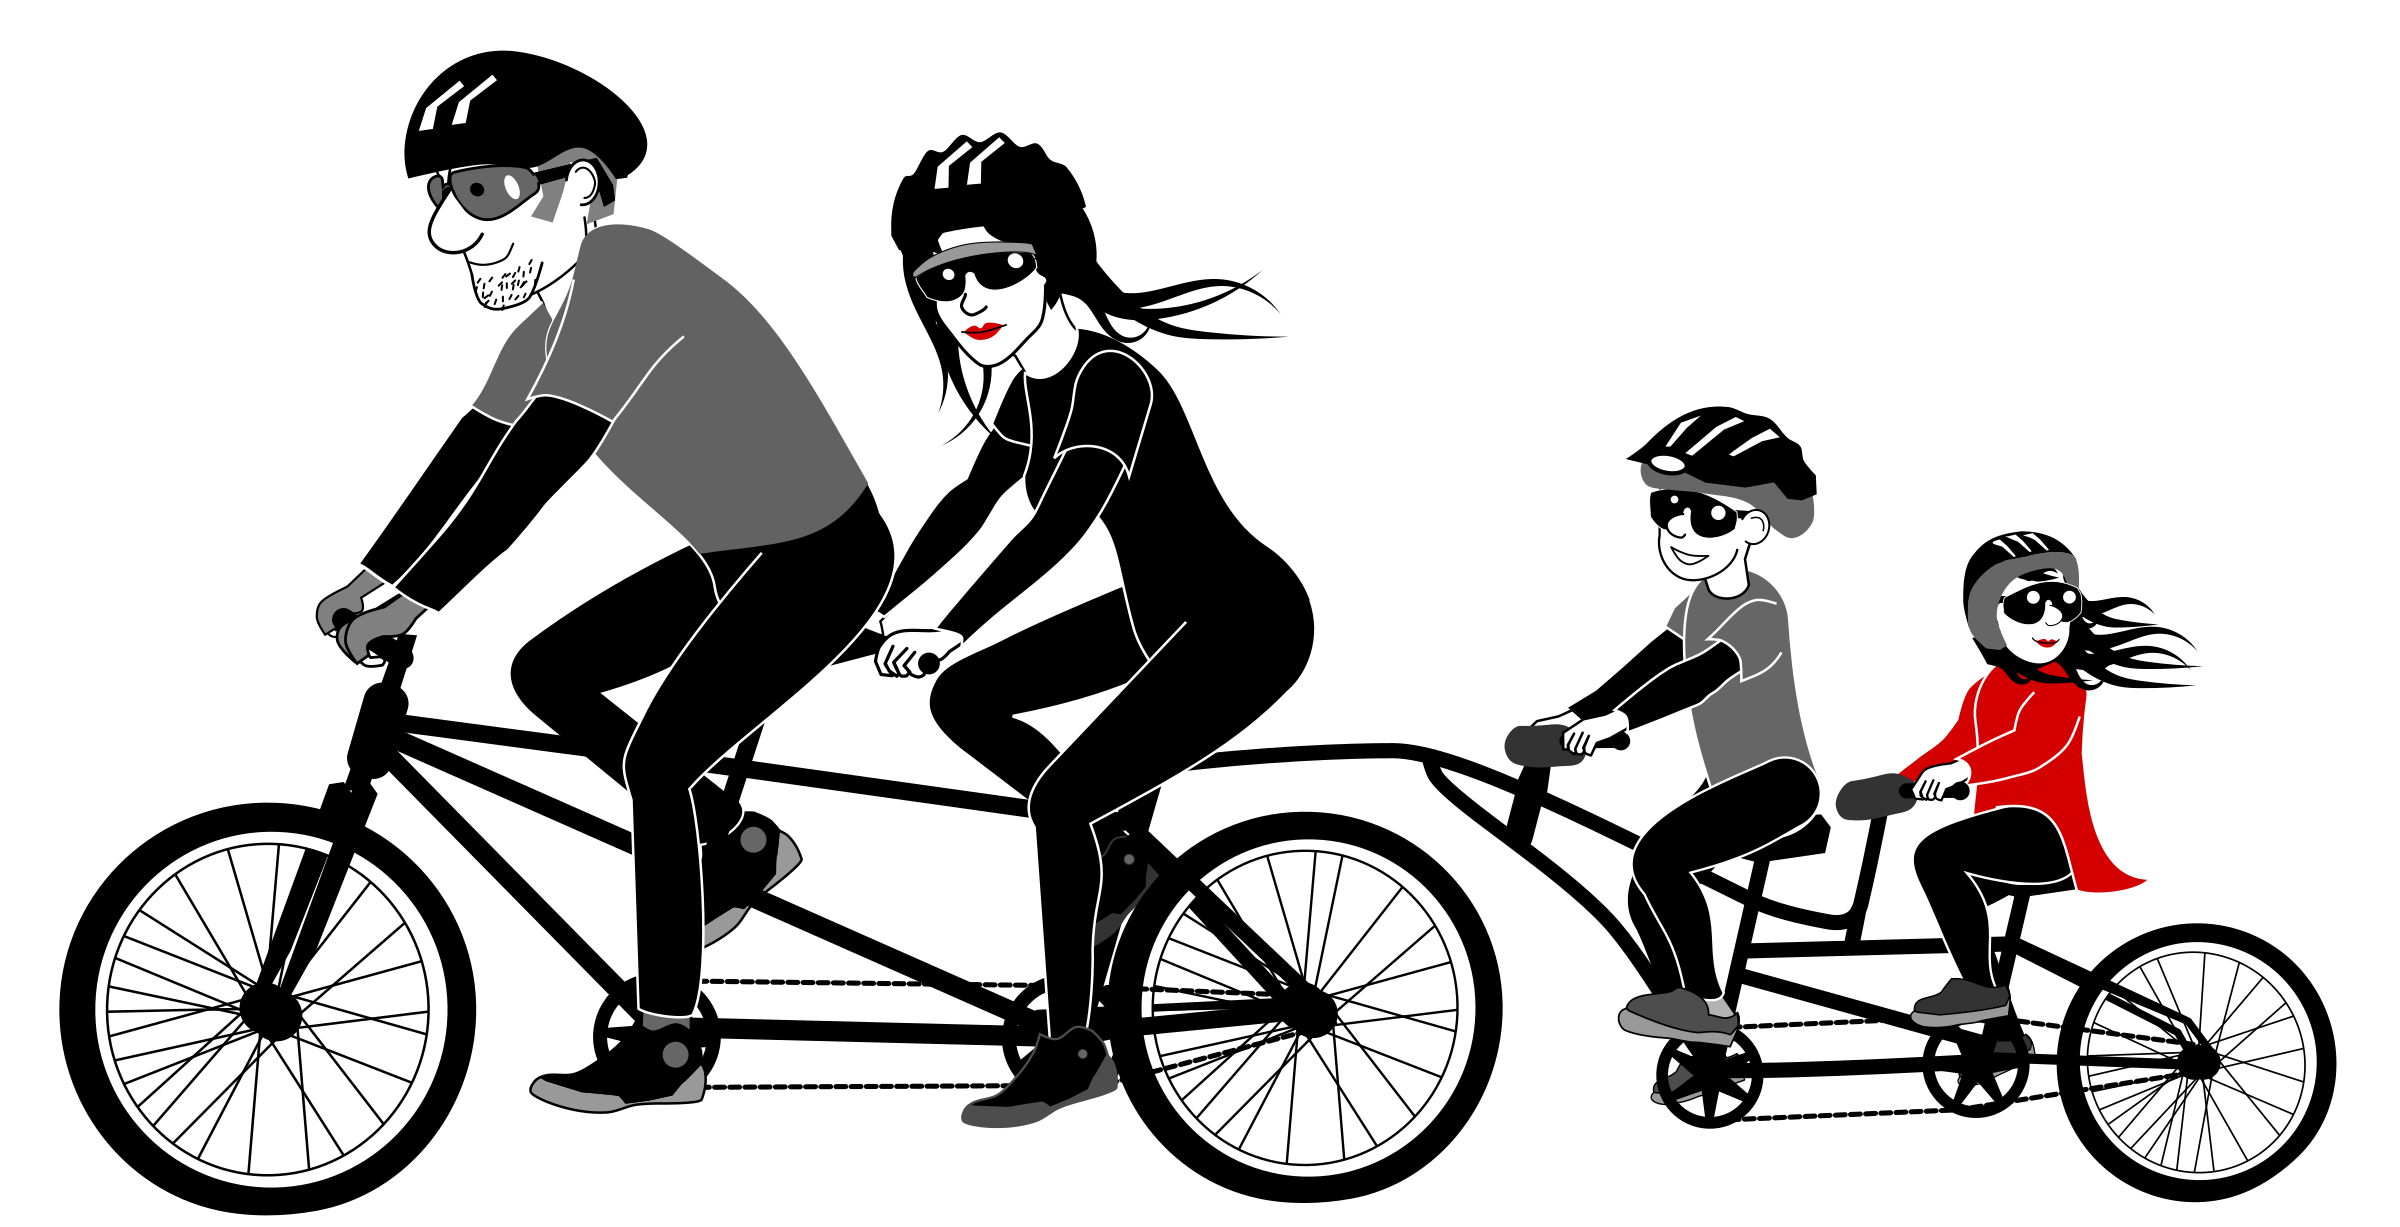 Cycle clipart female cyclist. Family riding tandem bicycle